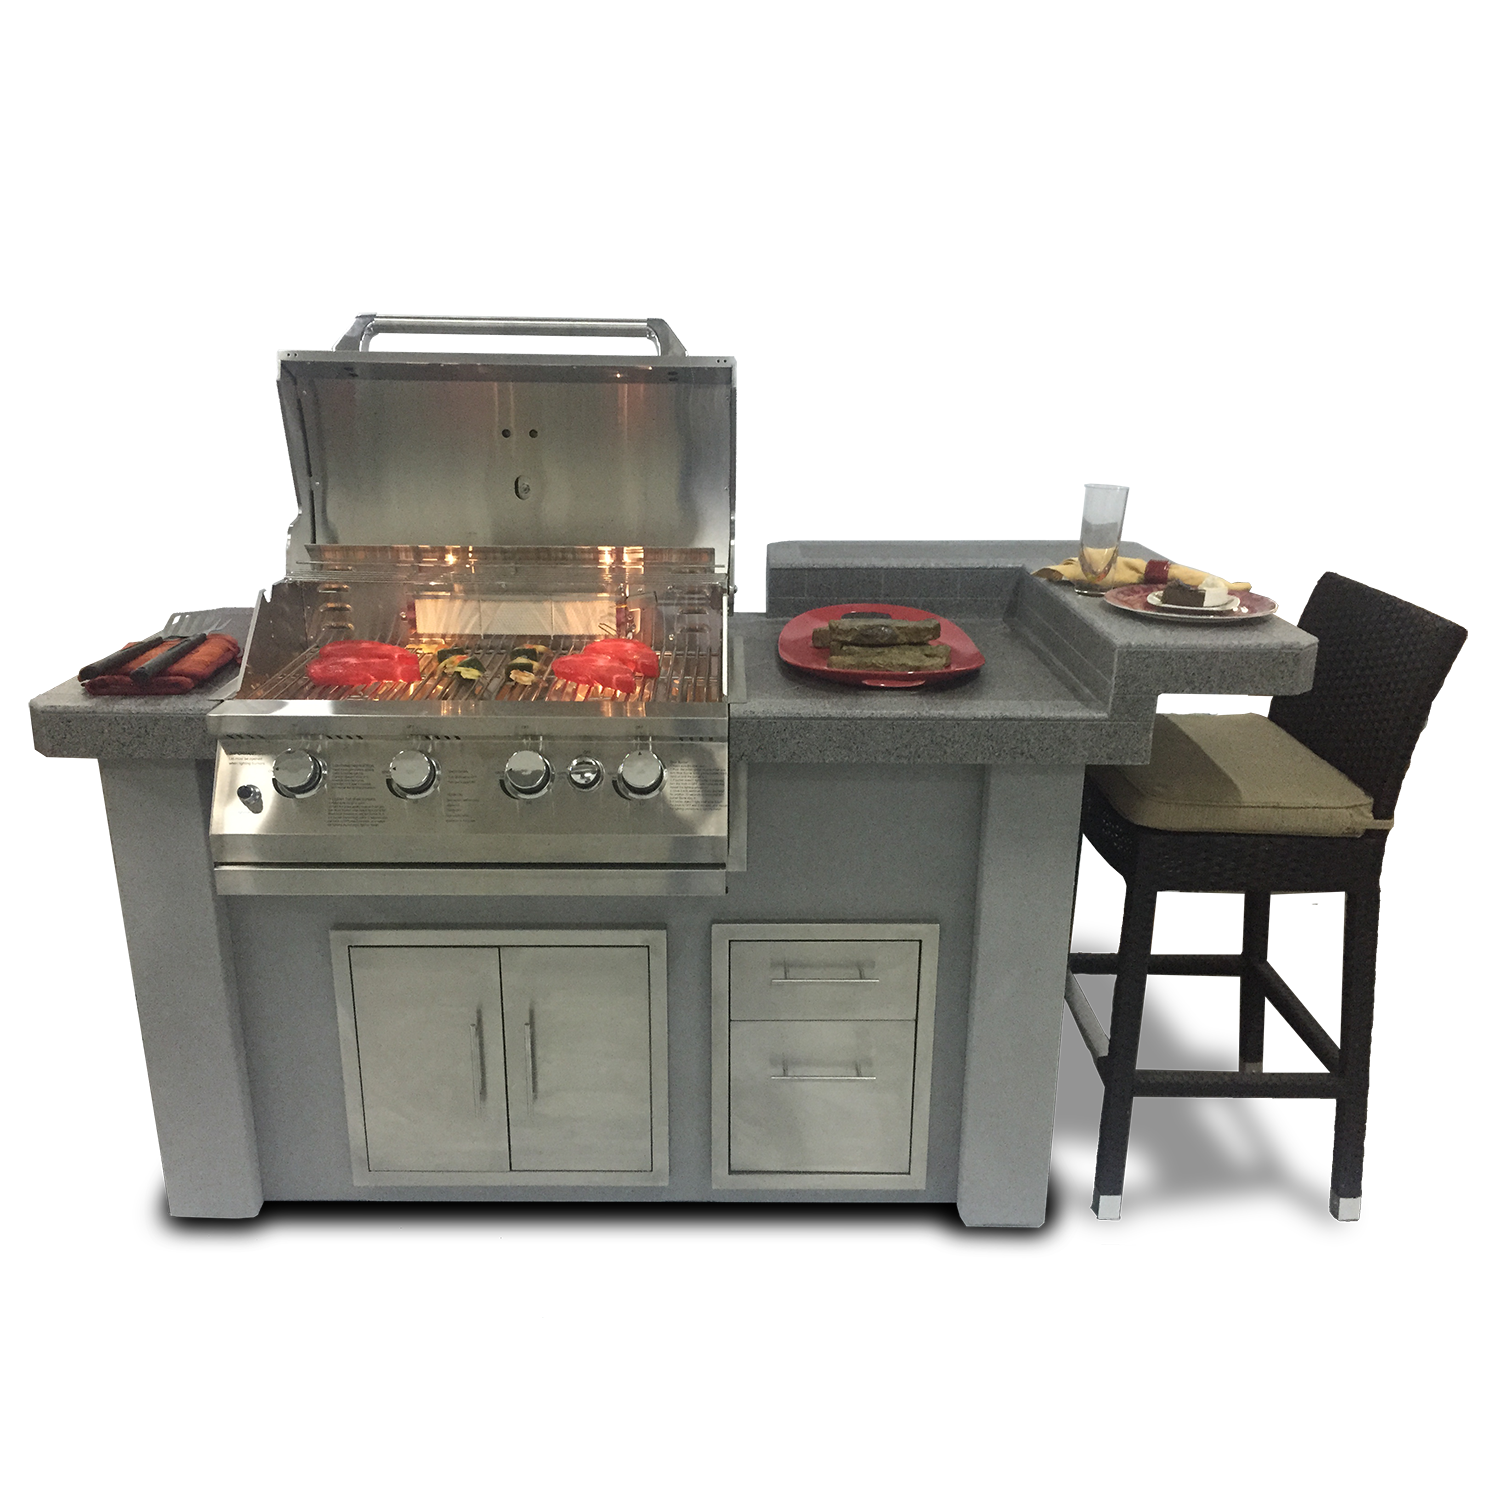 Biscayne Series Stucco/Tile Outdoor Kitchen Island    MSRP Pricing: $6146